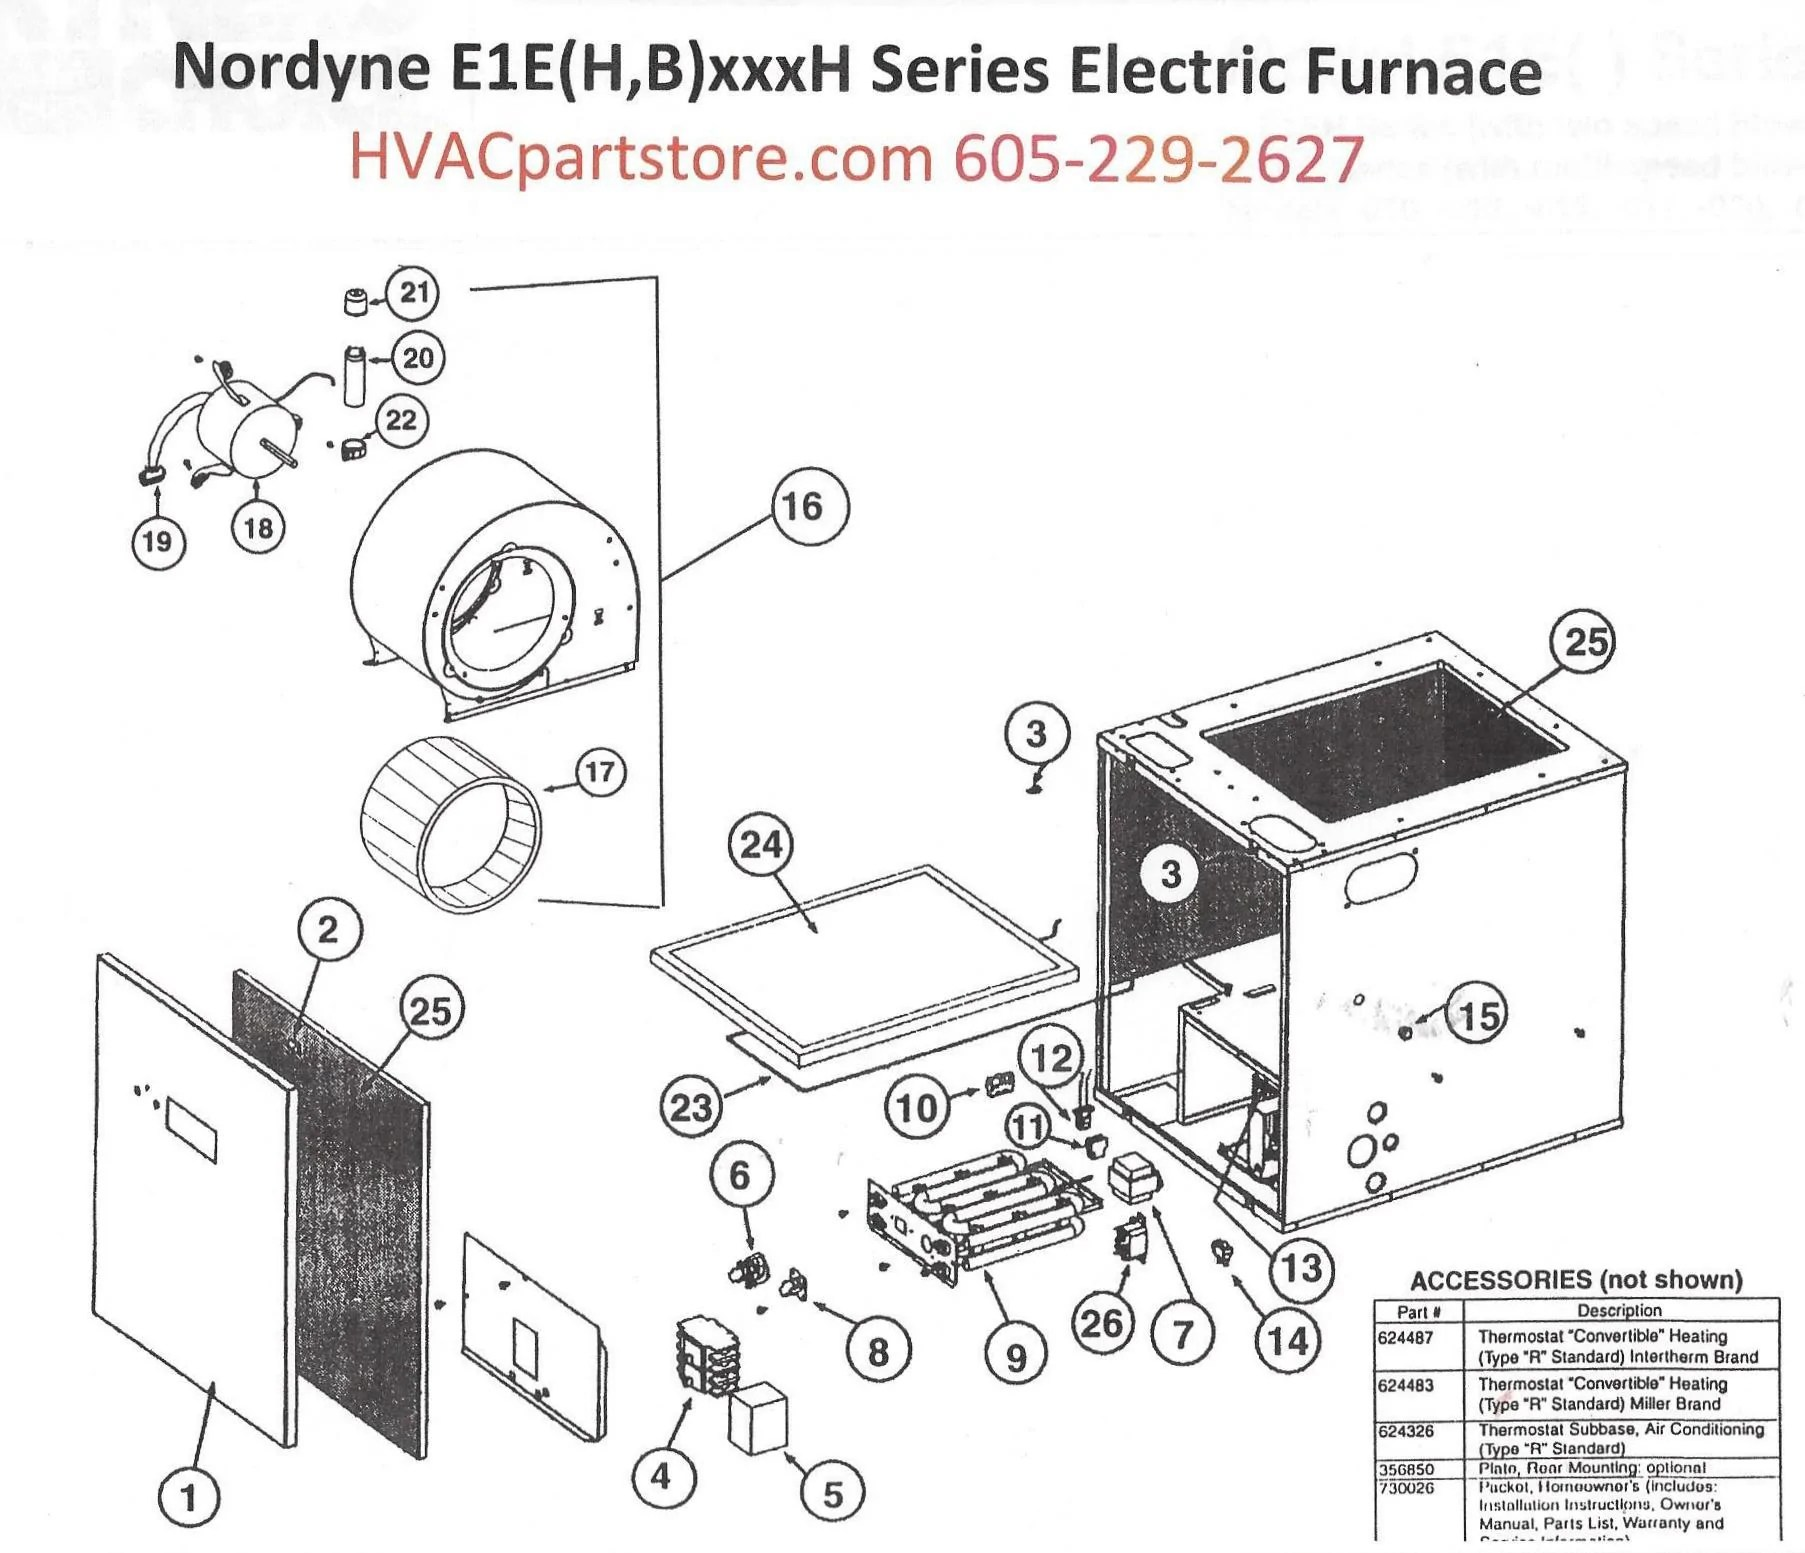 E1EH012H Nordyne Electric Furnace Parts – HVACpartstore